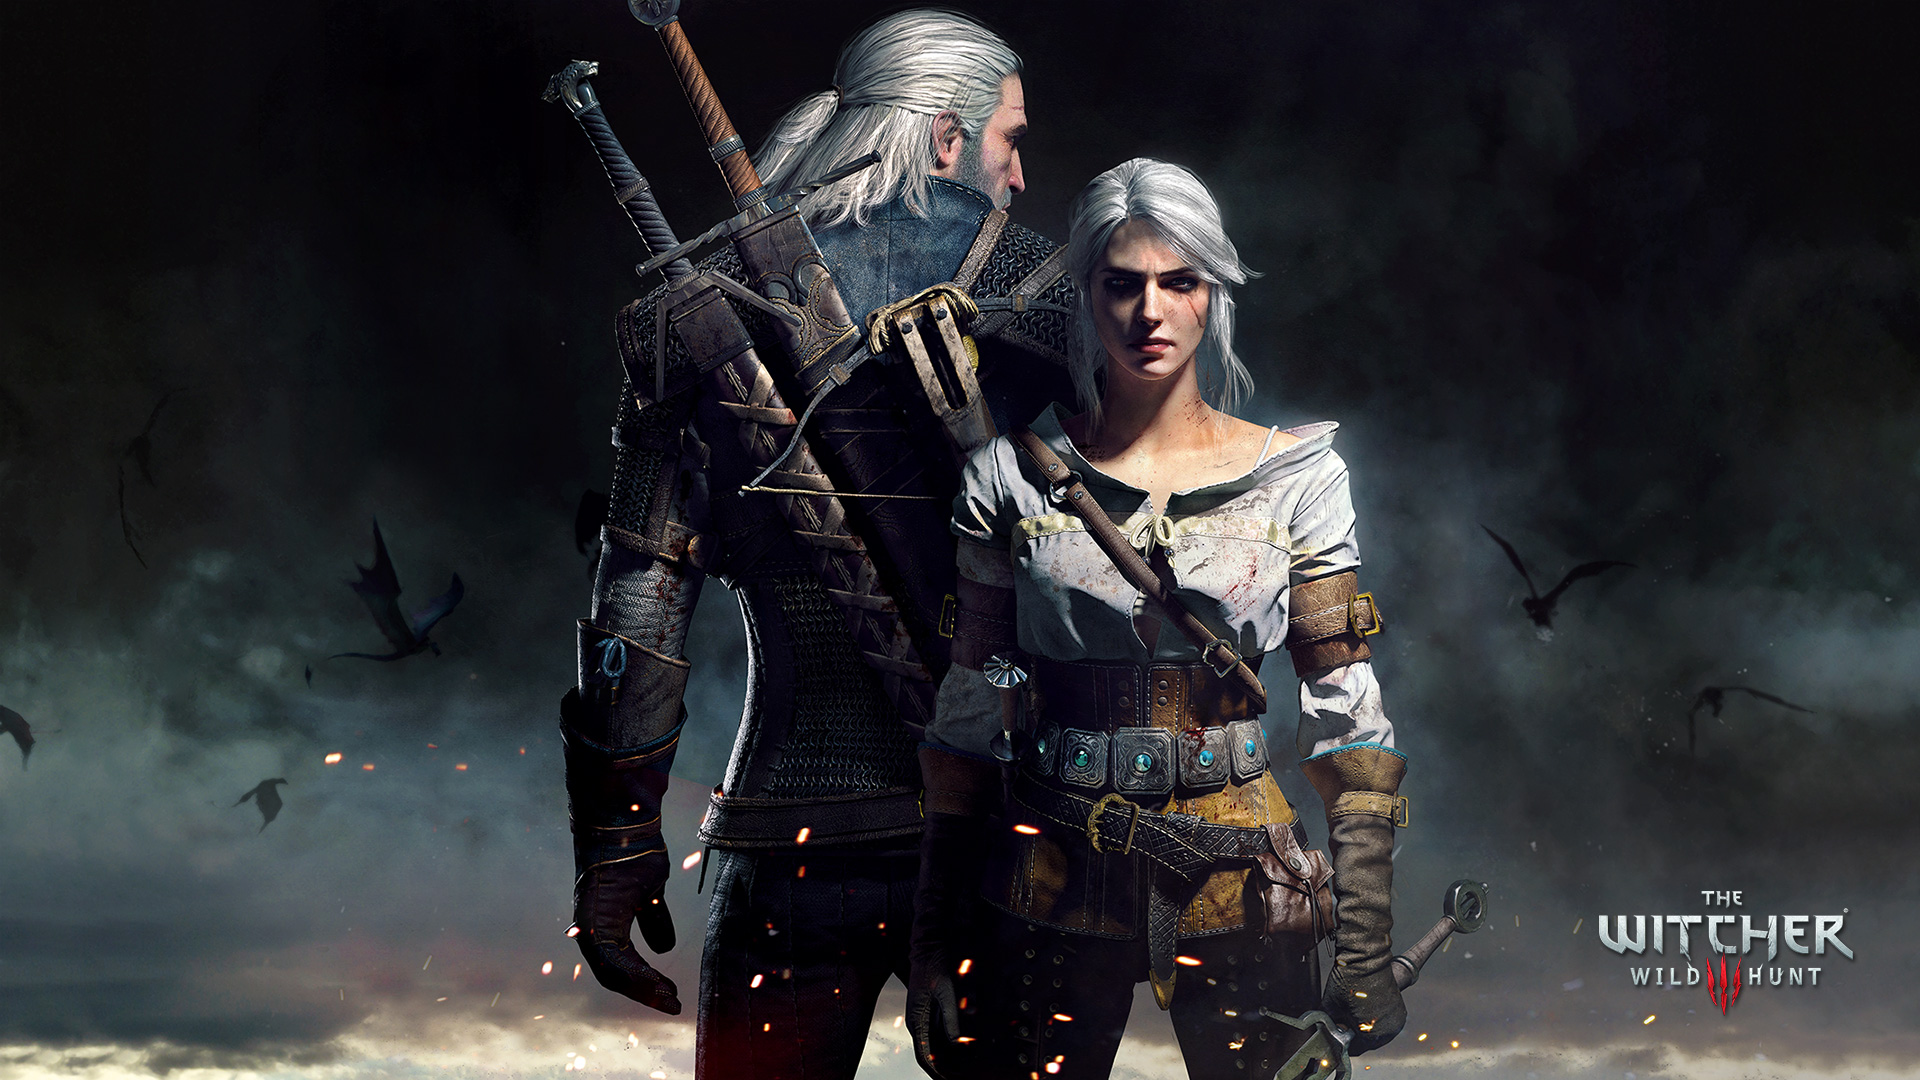 The Witcher 3 gets official mod support today